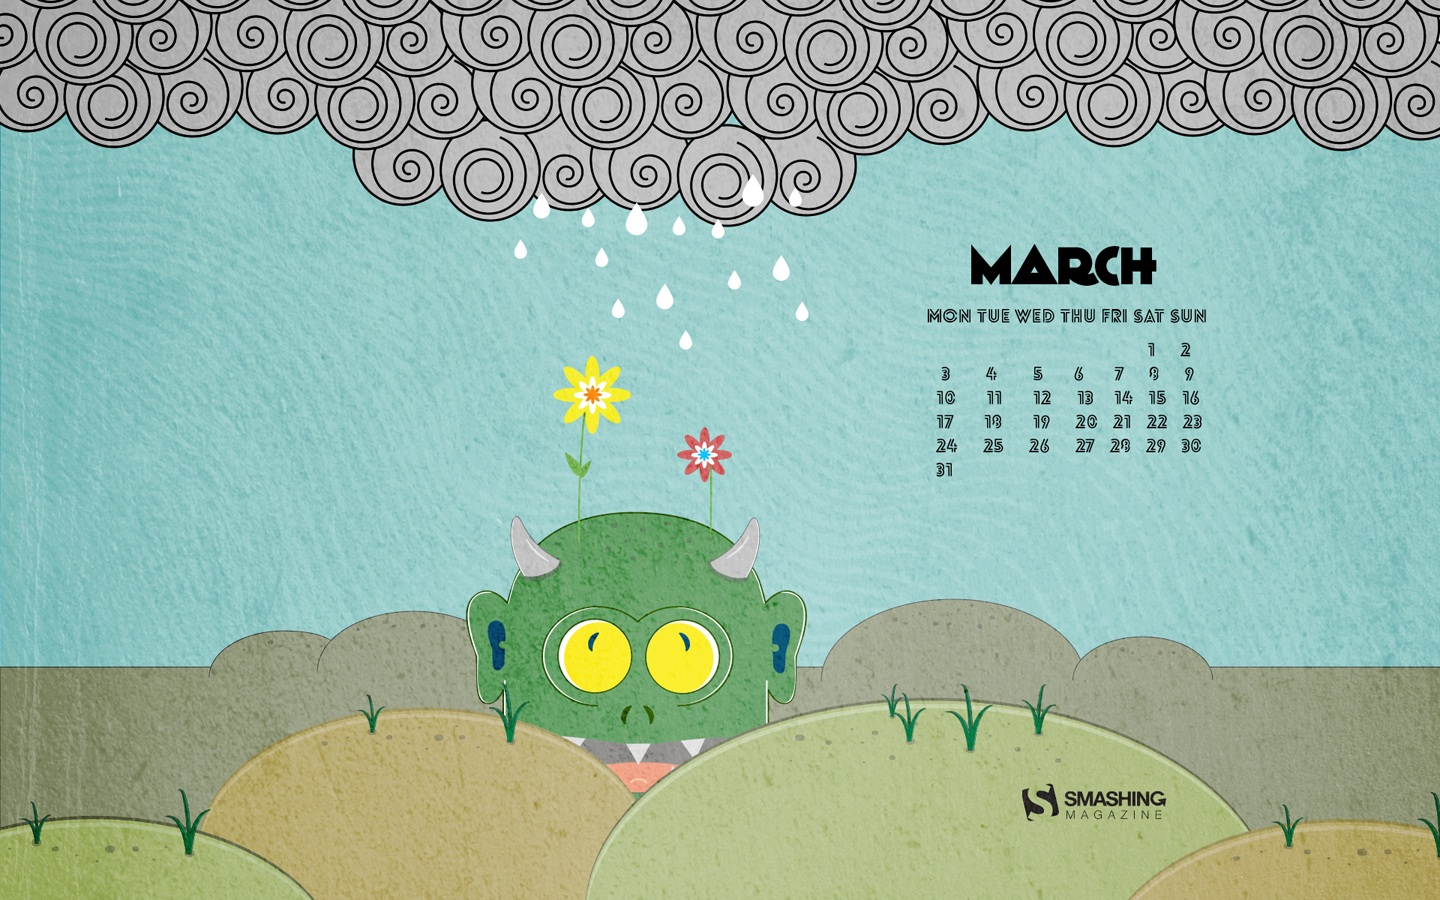 In January Calendar Wallpaper 50157